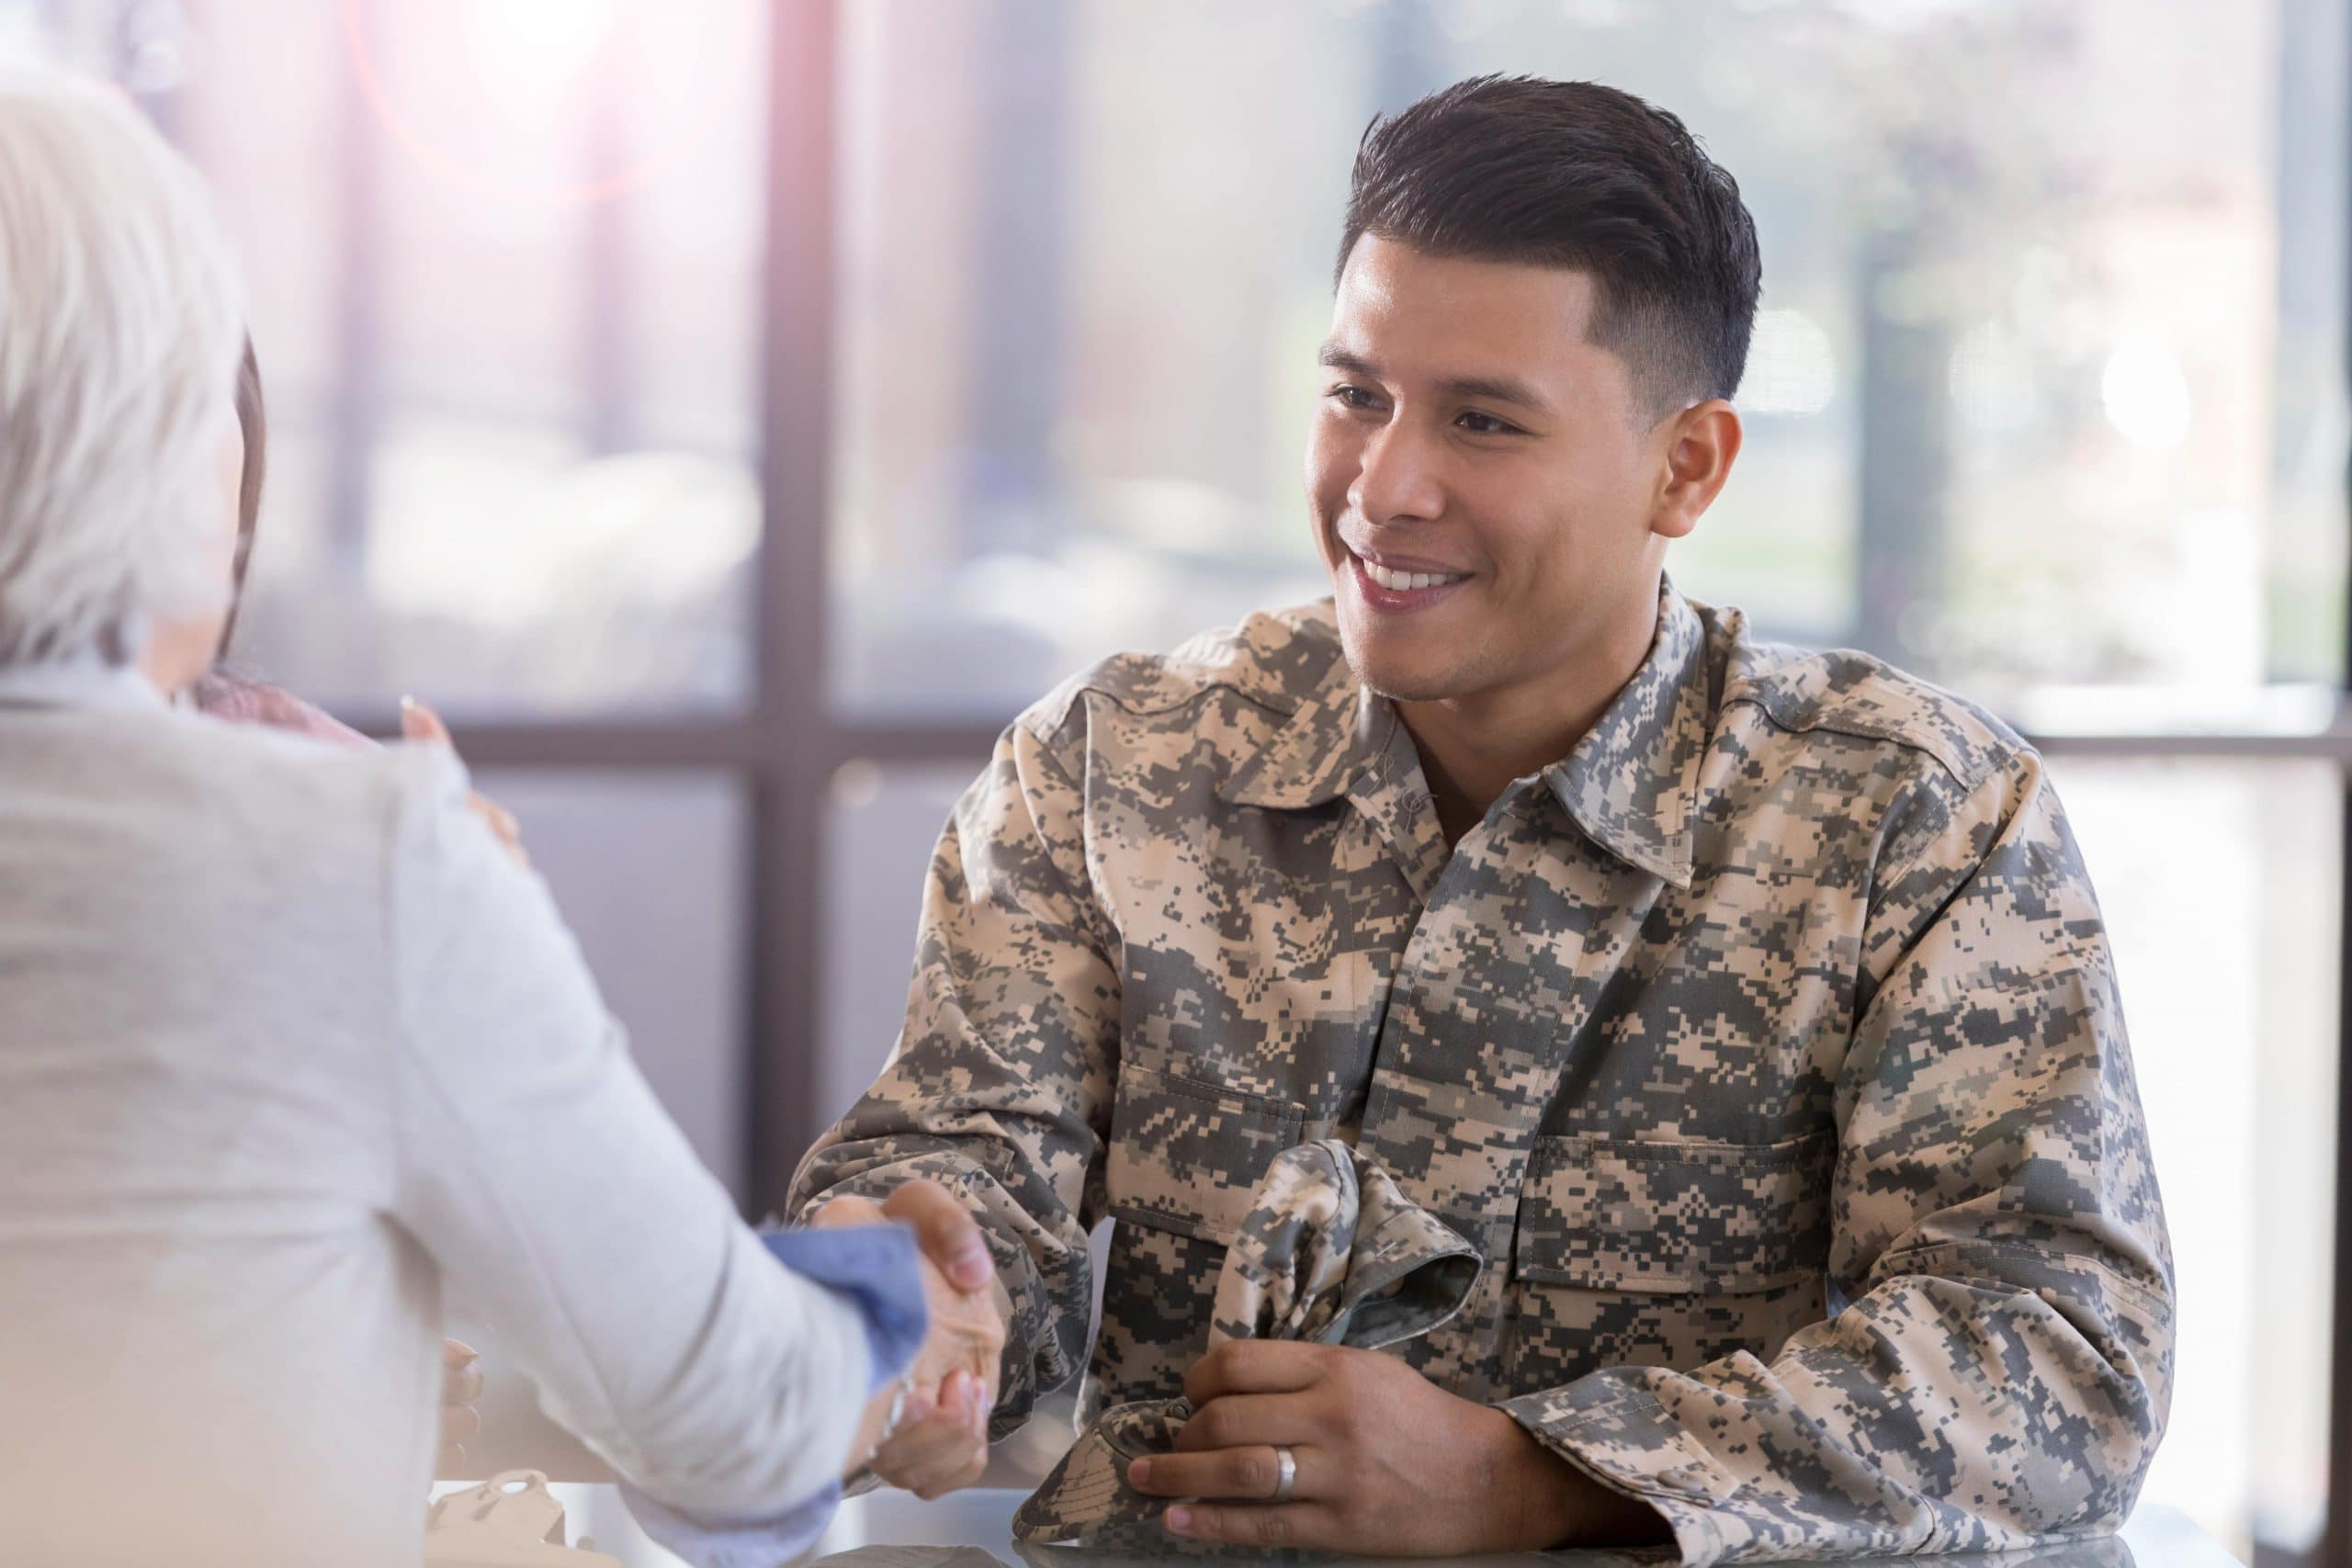 Military member on interview for civilian job